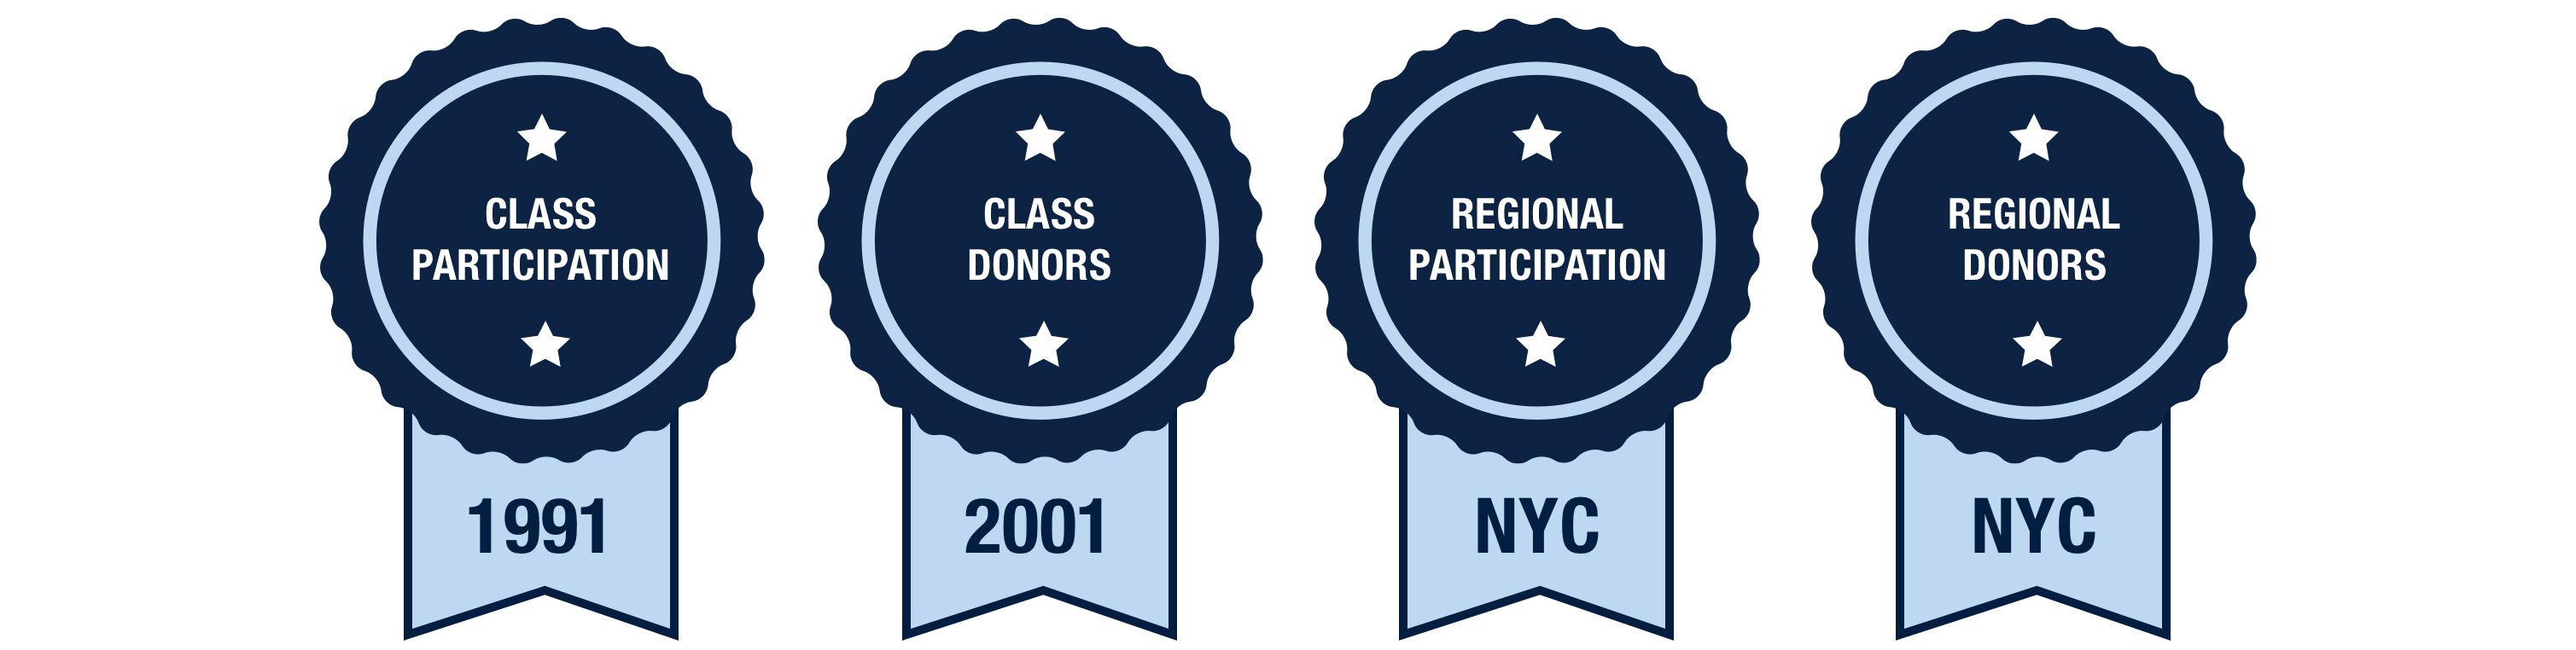 Blue and Gray Day 2021 winners. Class participation: 1991; Class donors: 2001; Regional participation: NYC; Regional donors: NYC.